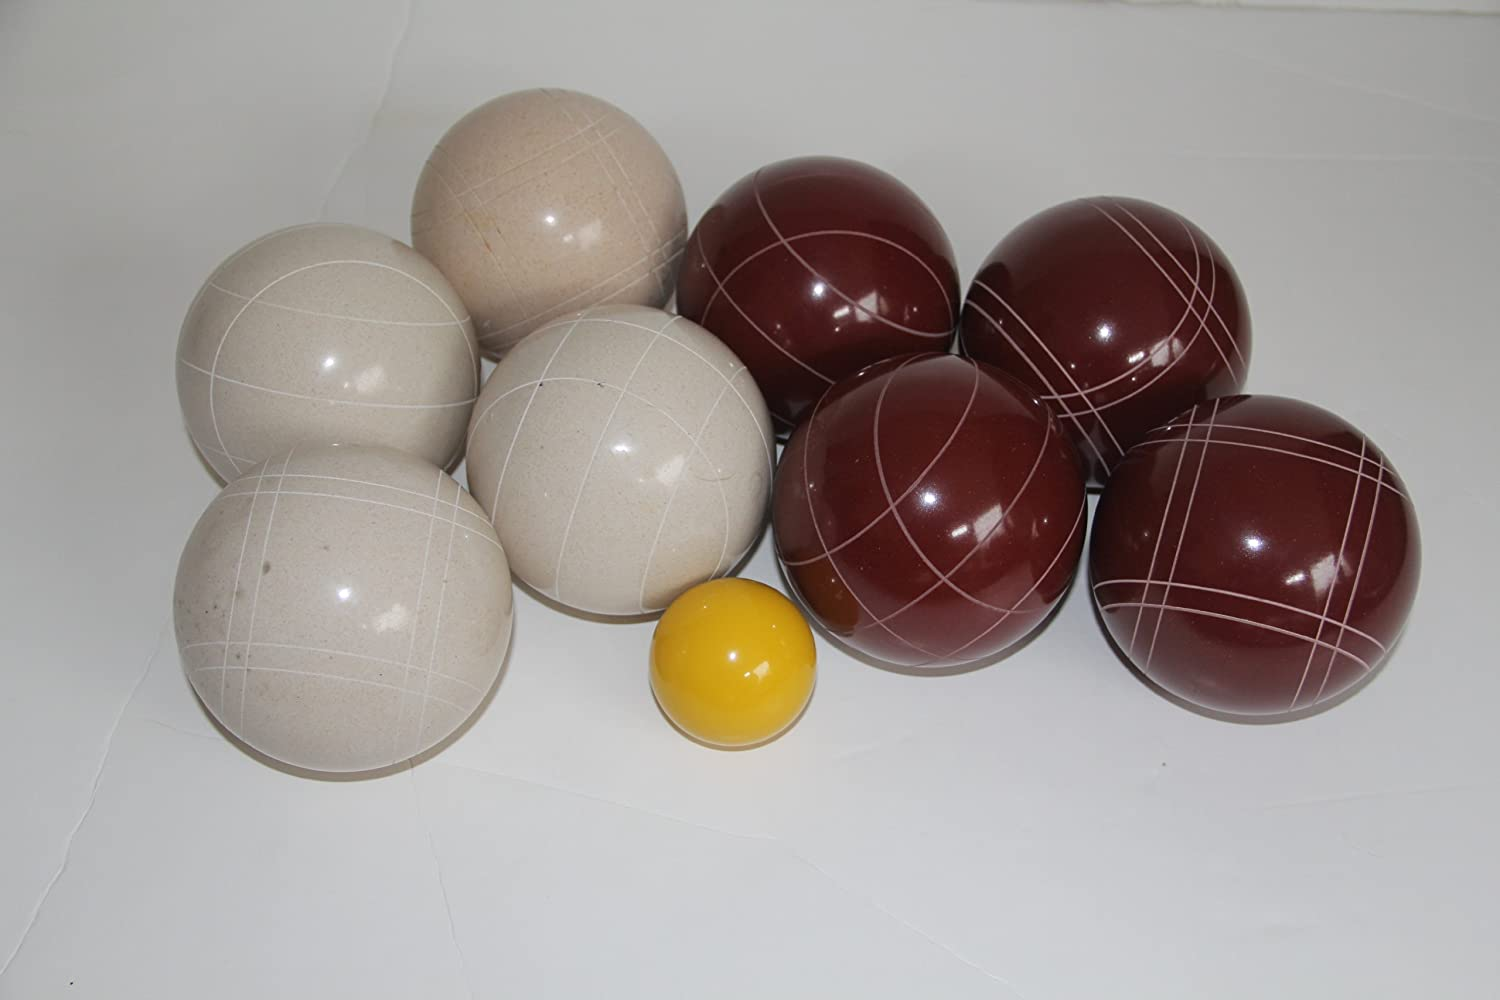 Premium Quality EPCO Tournament Bocce Set – 107mm Red and White Bocce Balls -… günstig bestellen